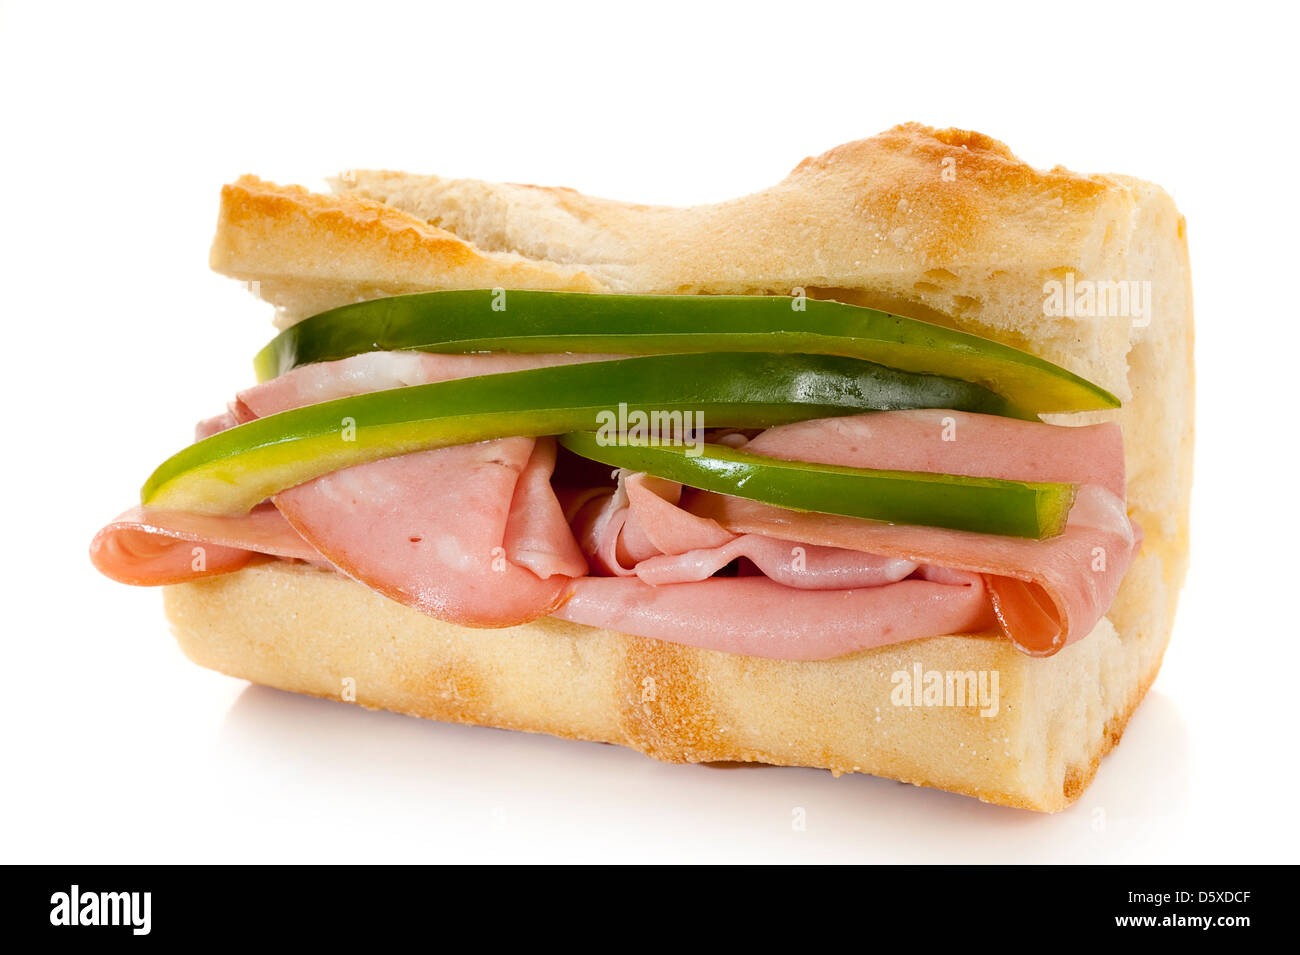 Close-up image of fresh made sandwich with peppers and salami - Stock Image